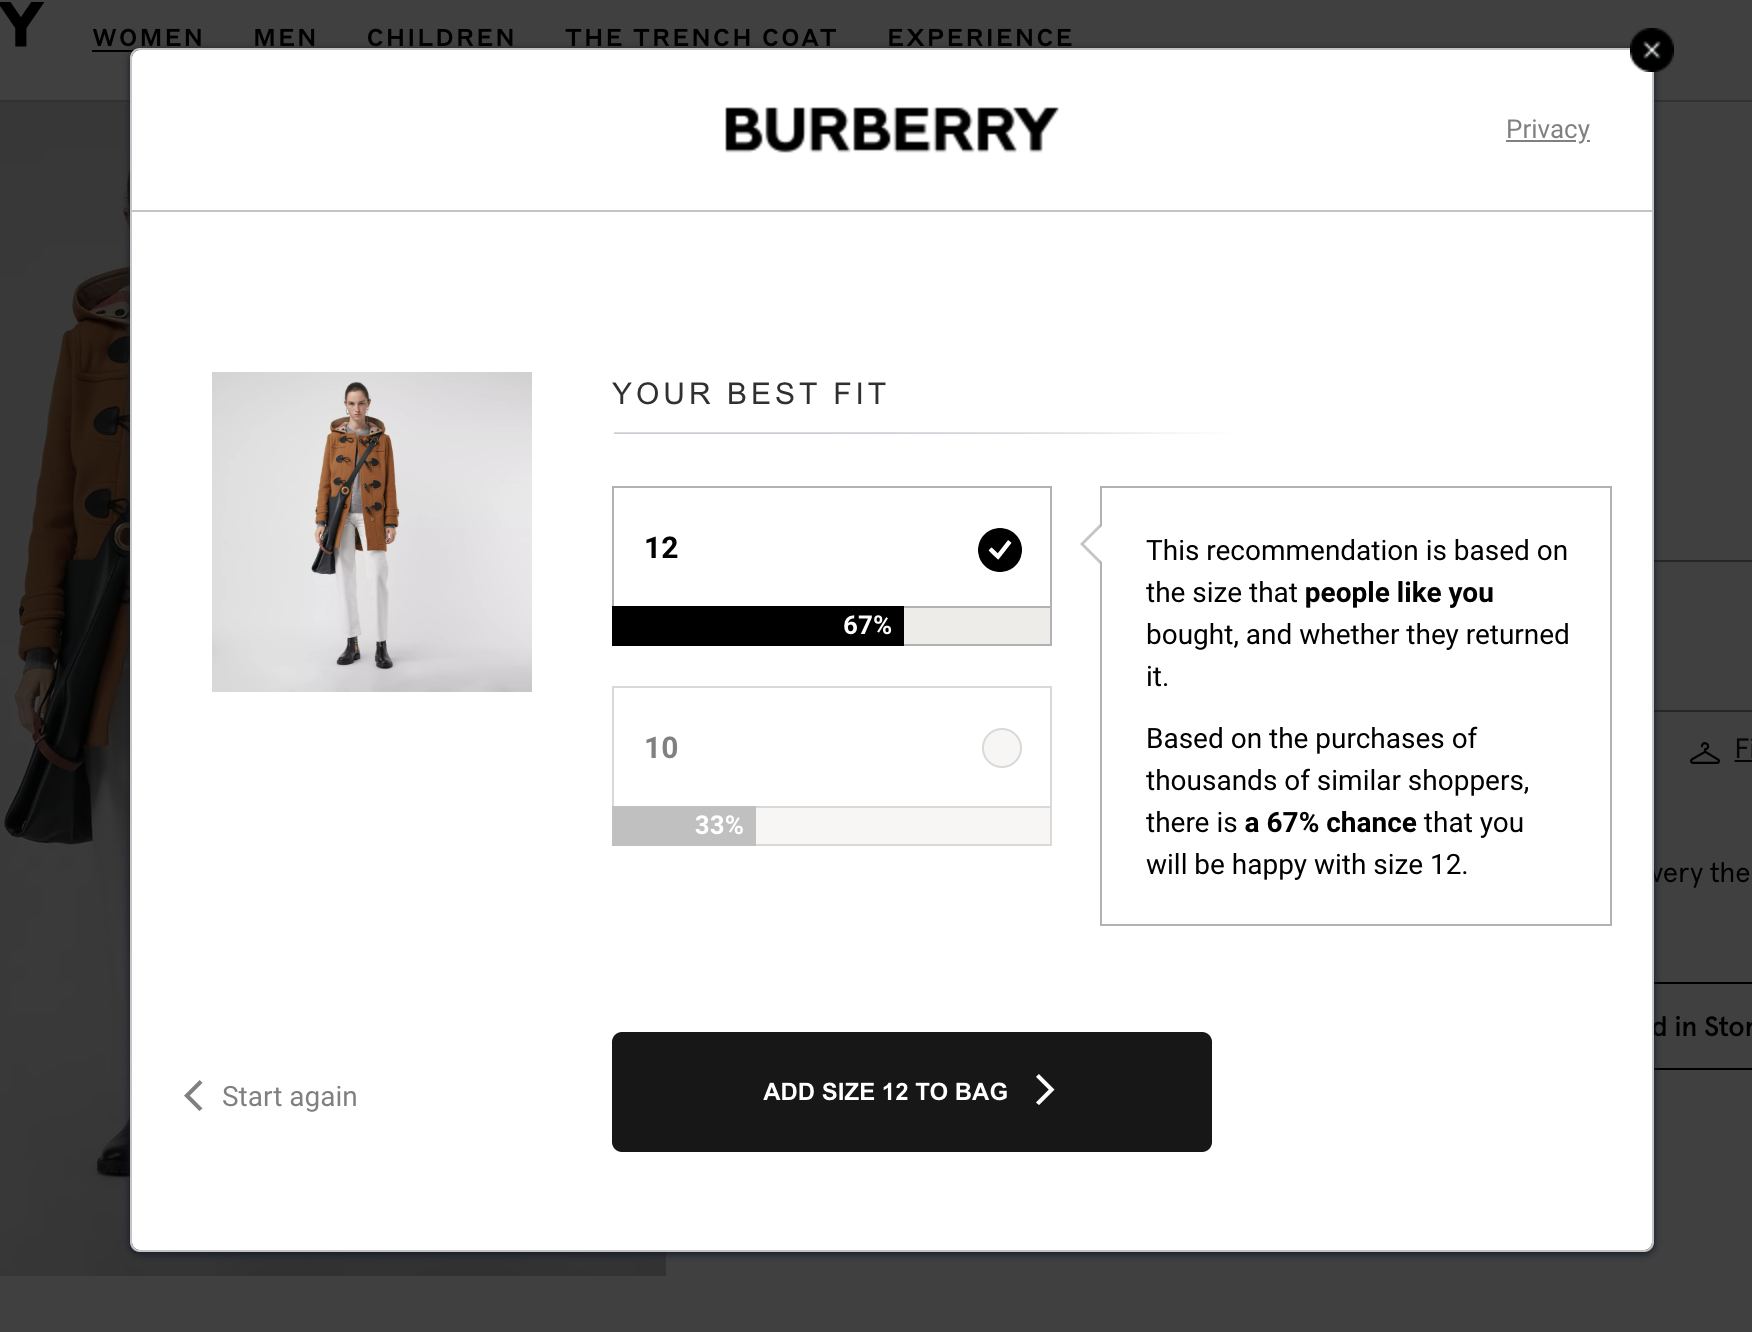 Burberry fit finder result with percentage